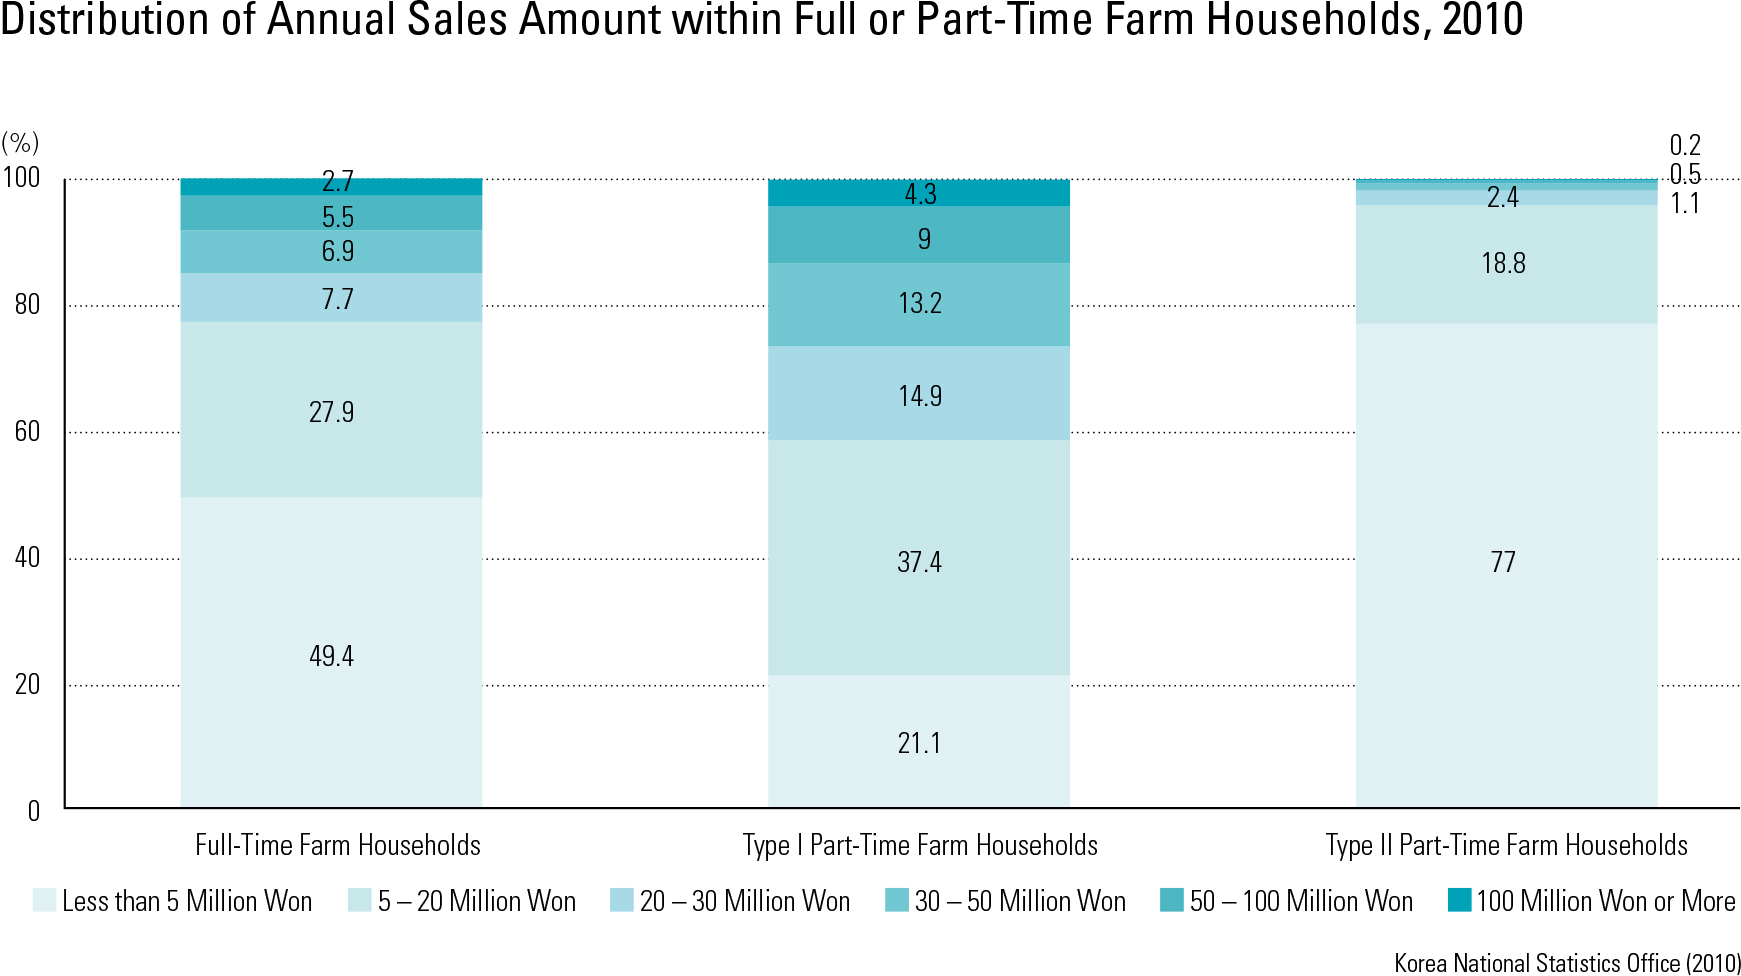 "Distribution of Annual Sales Amount within Full or Part-Time Farm Households, 2010<p class=""oz_zoom"" zimg=""http://imagedata.cafe24.com/us_3/us3_160-4_2.jpg""><span style=""font-family:Nanum Myeongjo;""><span style=""font-size:18px;""><span class=""label label-danger"">UPDATE DATA</span></span></p>"